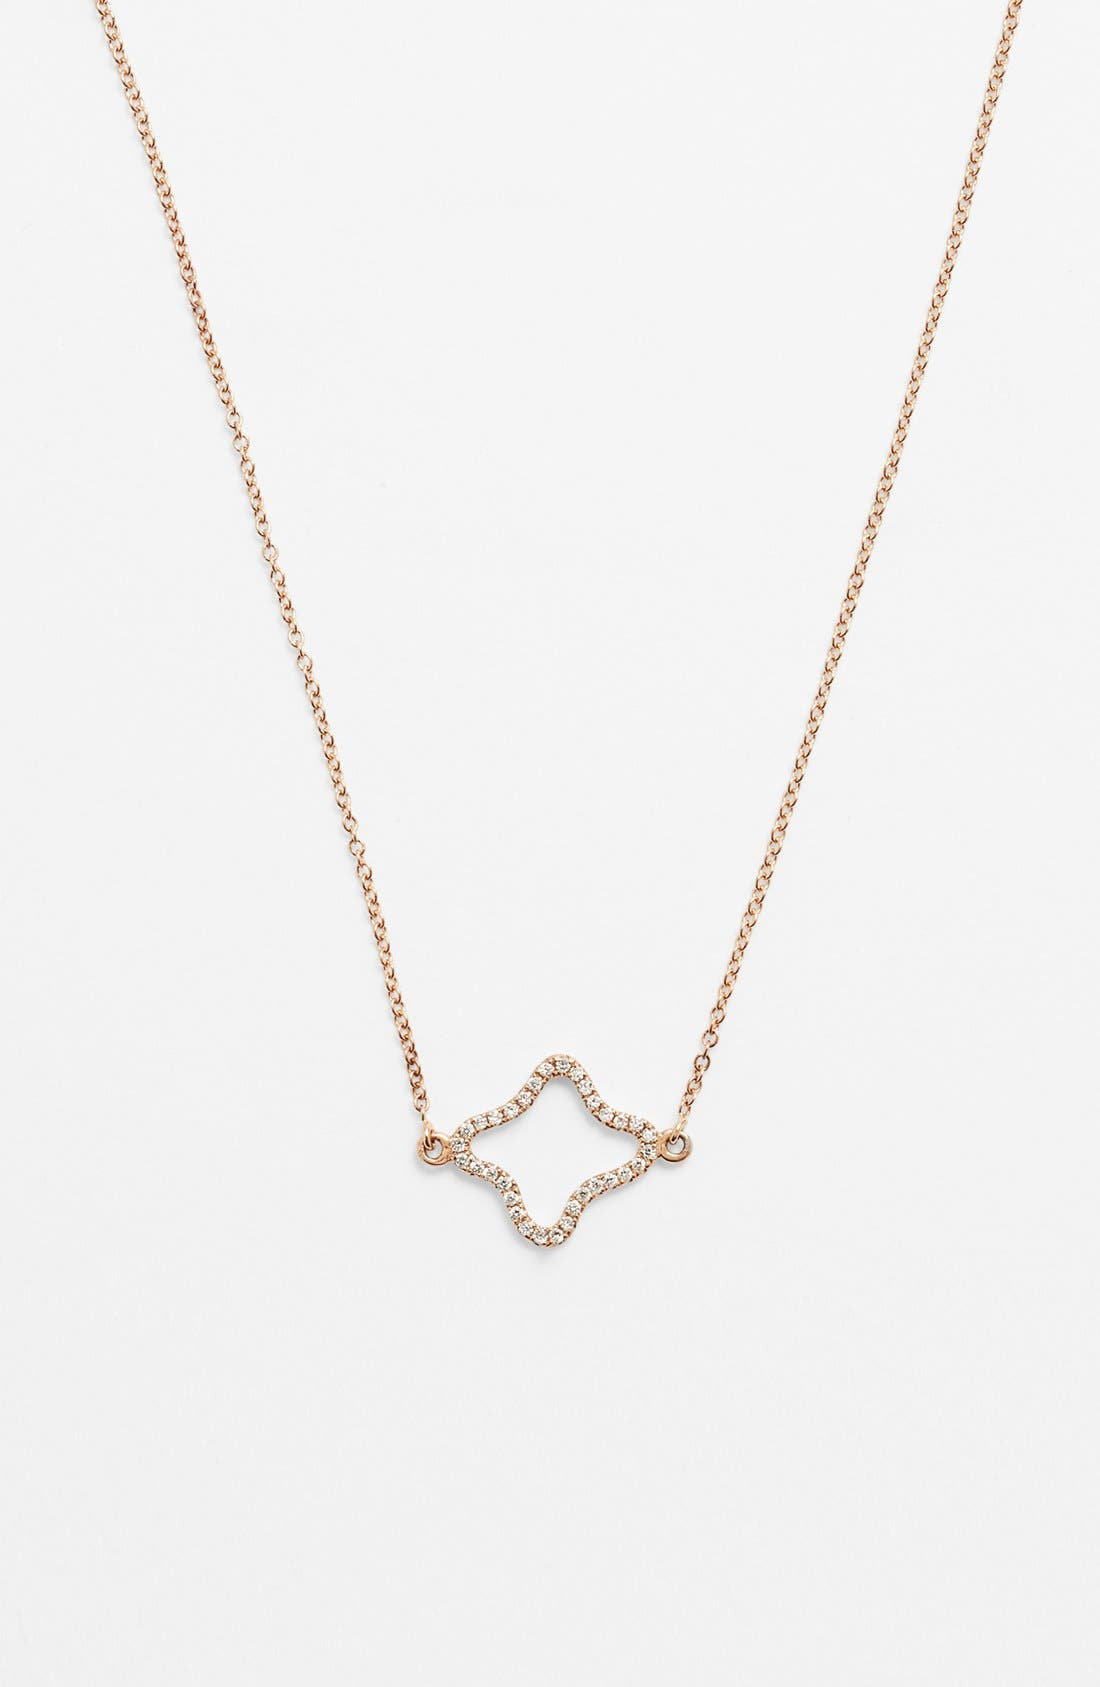 Alternate Image 1 Selected - Bony Levy Pavé Diamond Quatrefoil Pendant Necklace (Nordstrom Exclusive)